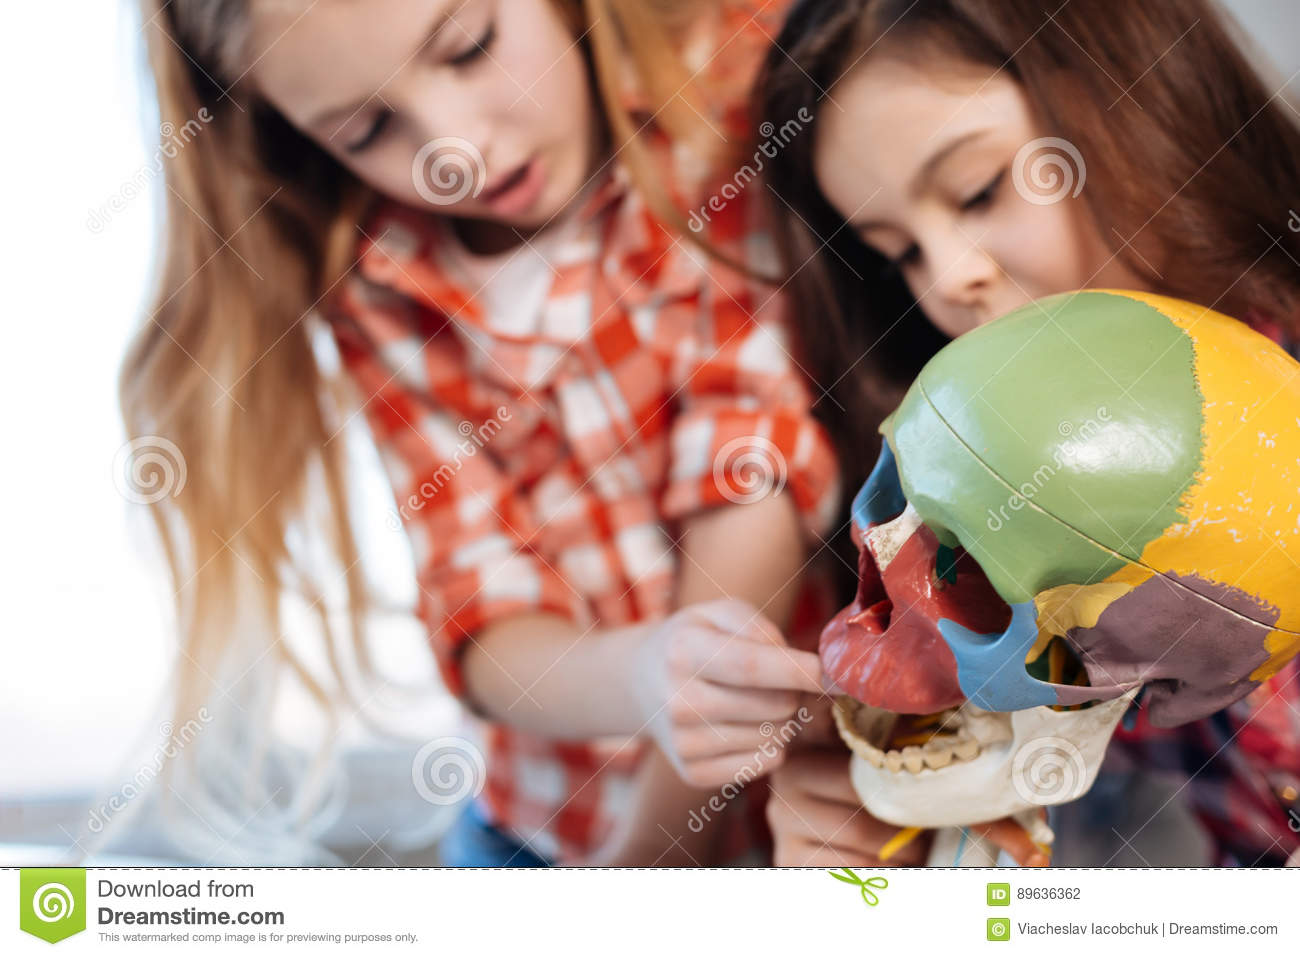 Fearless Charming Ladies Touching A Plastic Skull Stock Photo ...